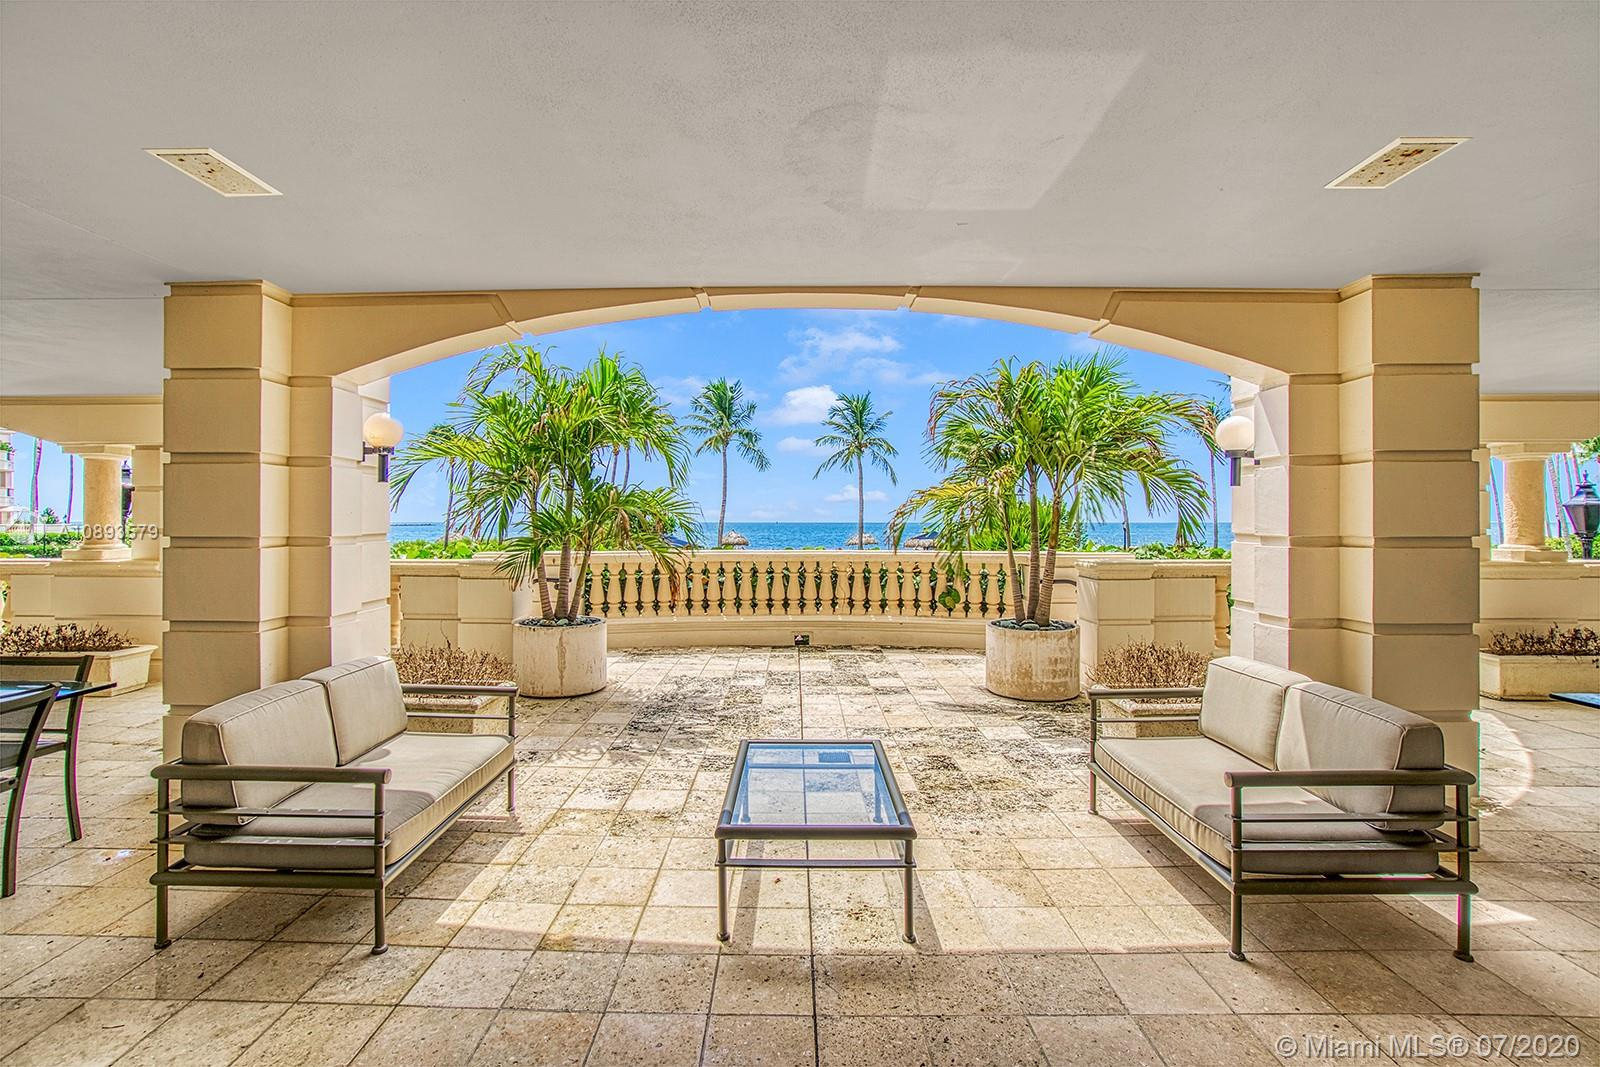 7812 Fisher Island Dr, Unit #7812 Luxury Real Estate